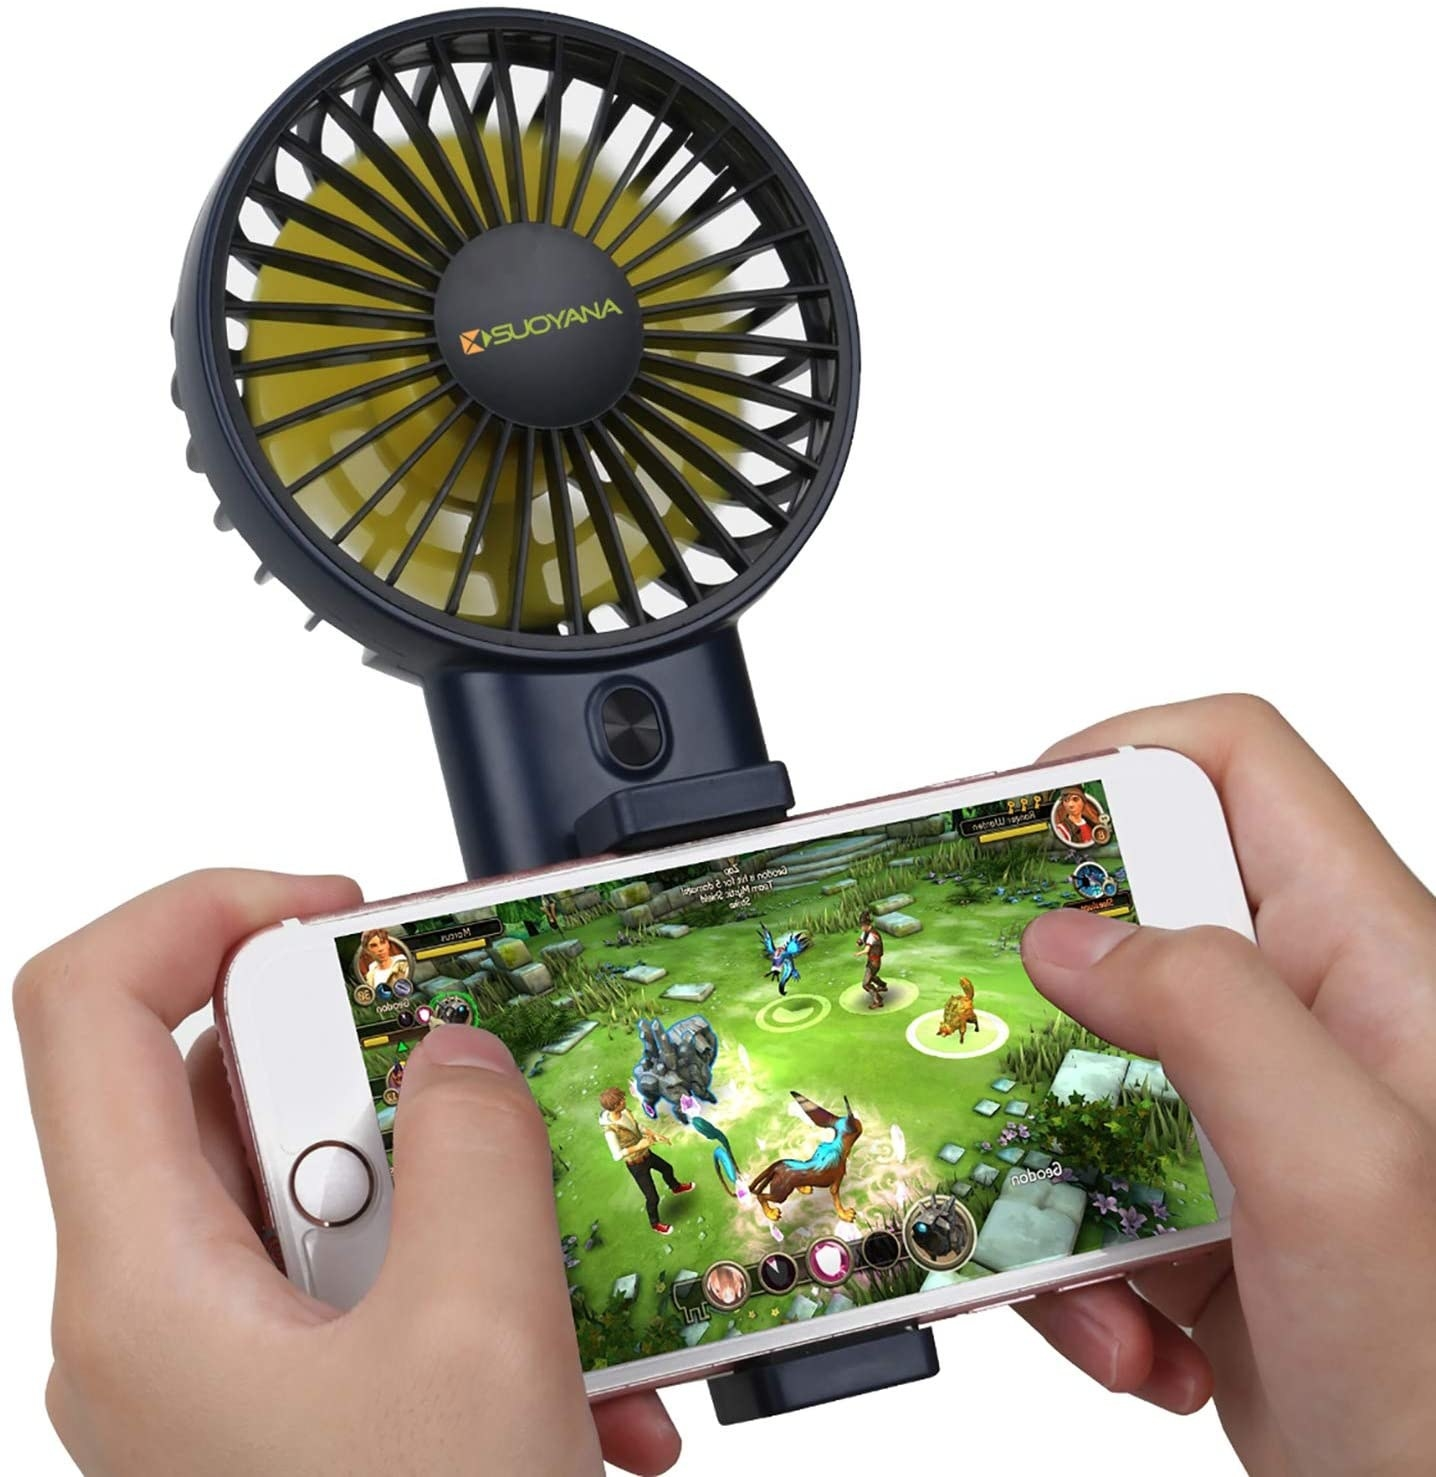 A fan clamped onto a cellphone